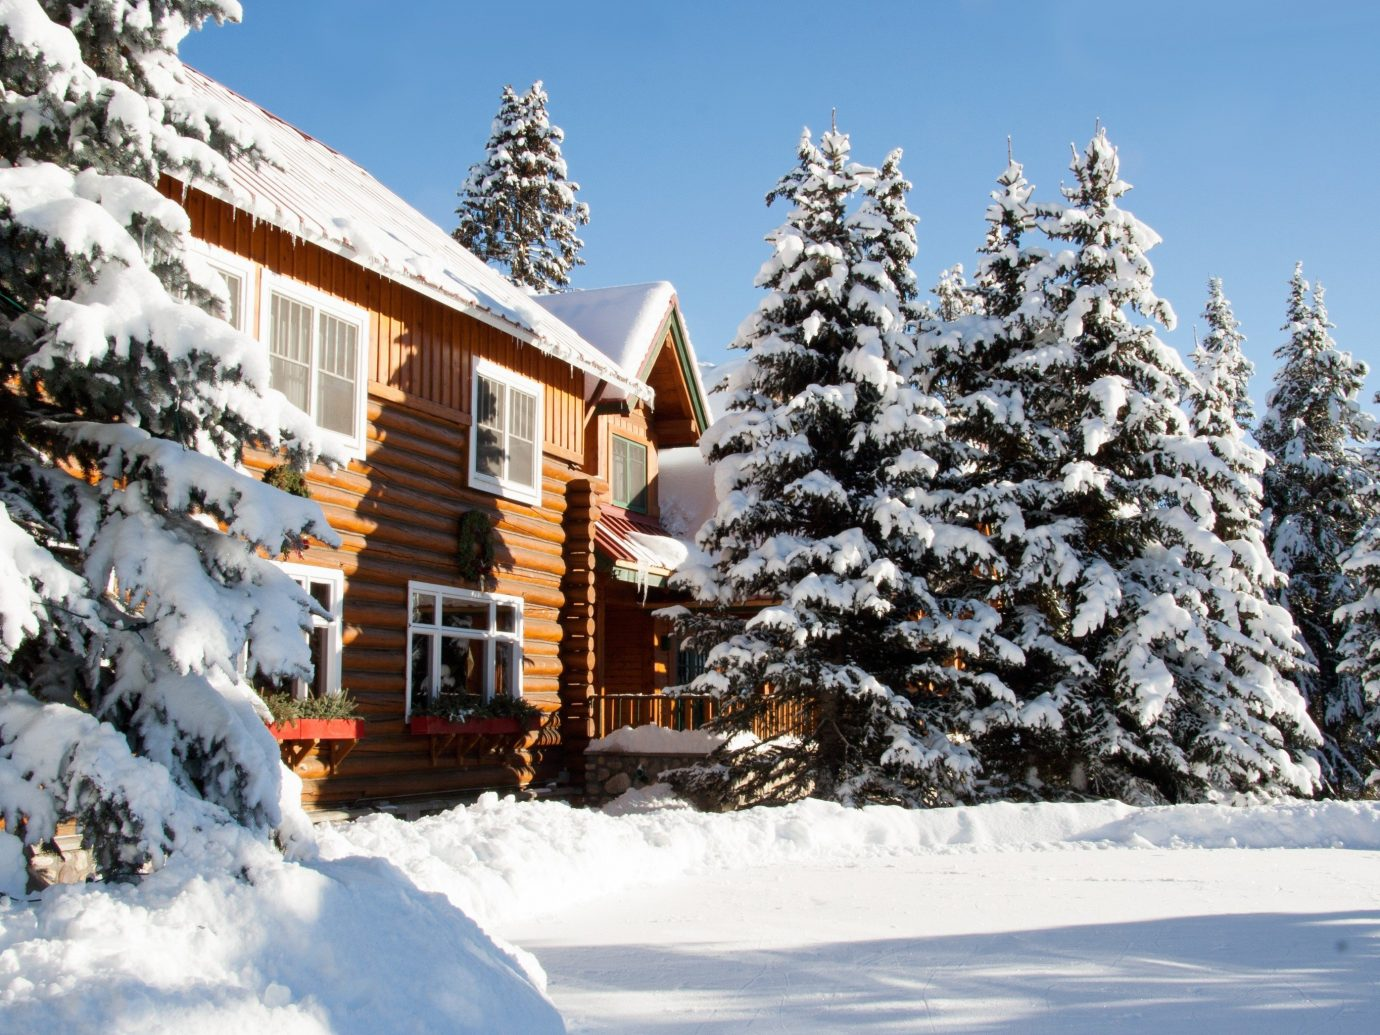 Hotels snow outdoor tree sky Winter Nature weather covered season geological phenomenon Resort woody plant fir piste mountain range spruce house surrounded